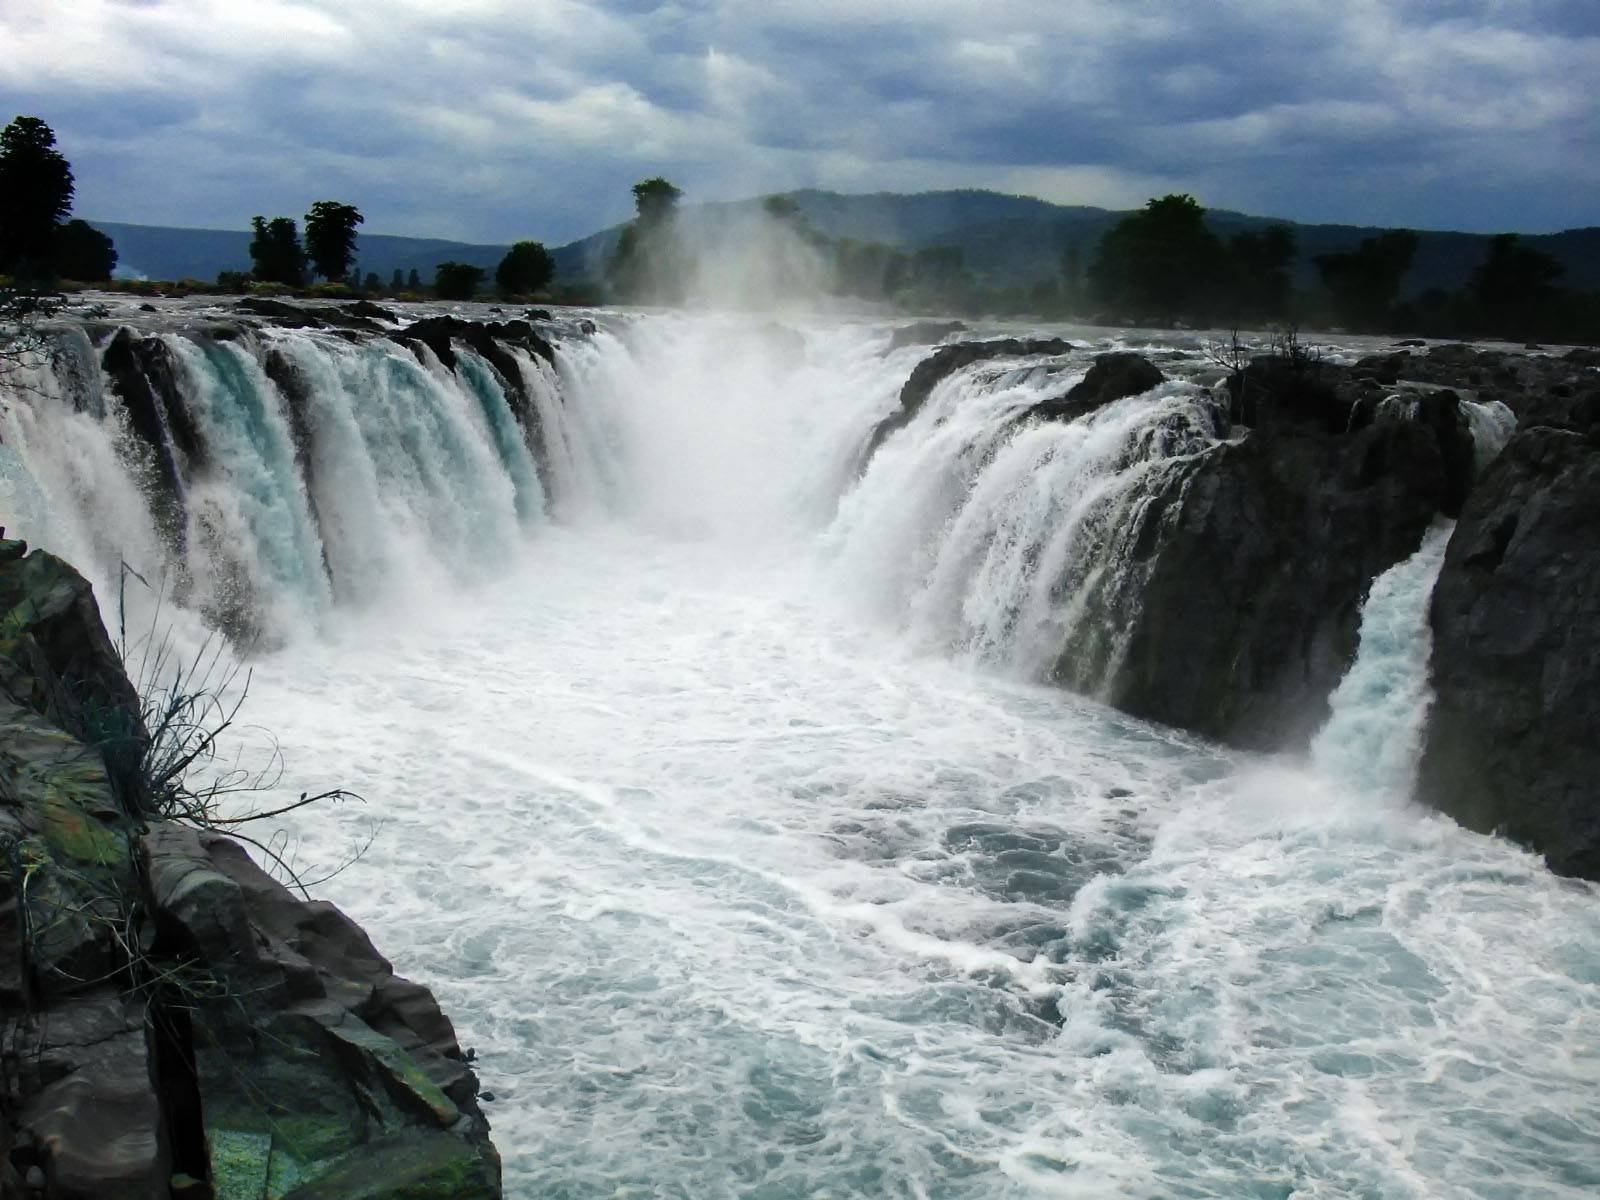 Hogenakkal Falls – A worthy day trip from Bangalore